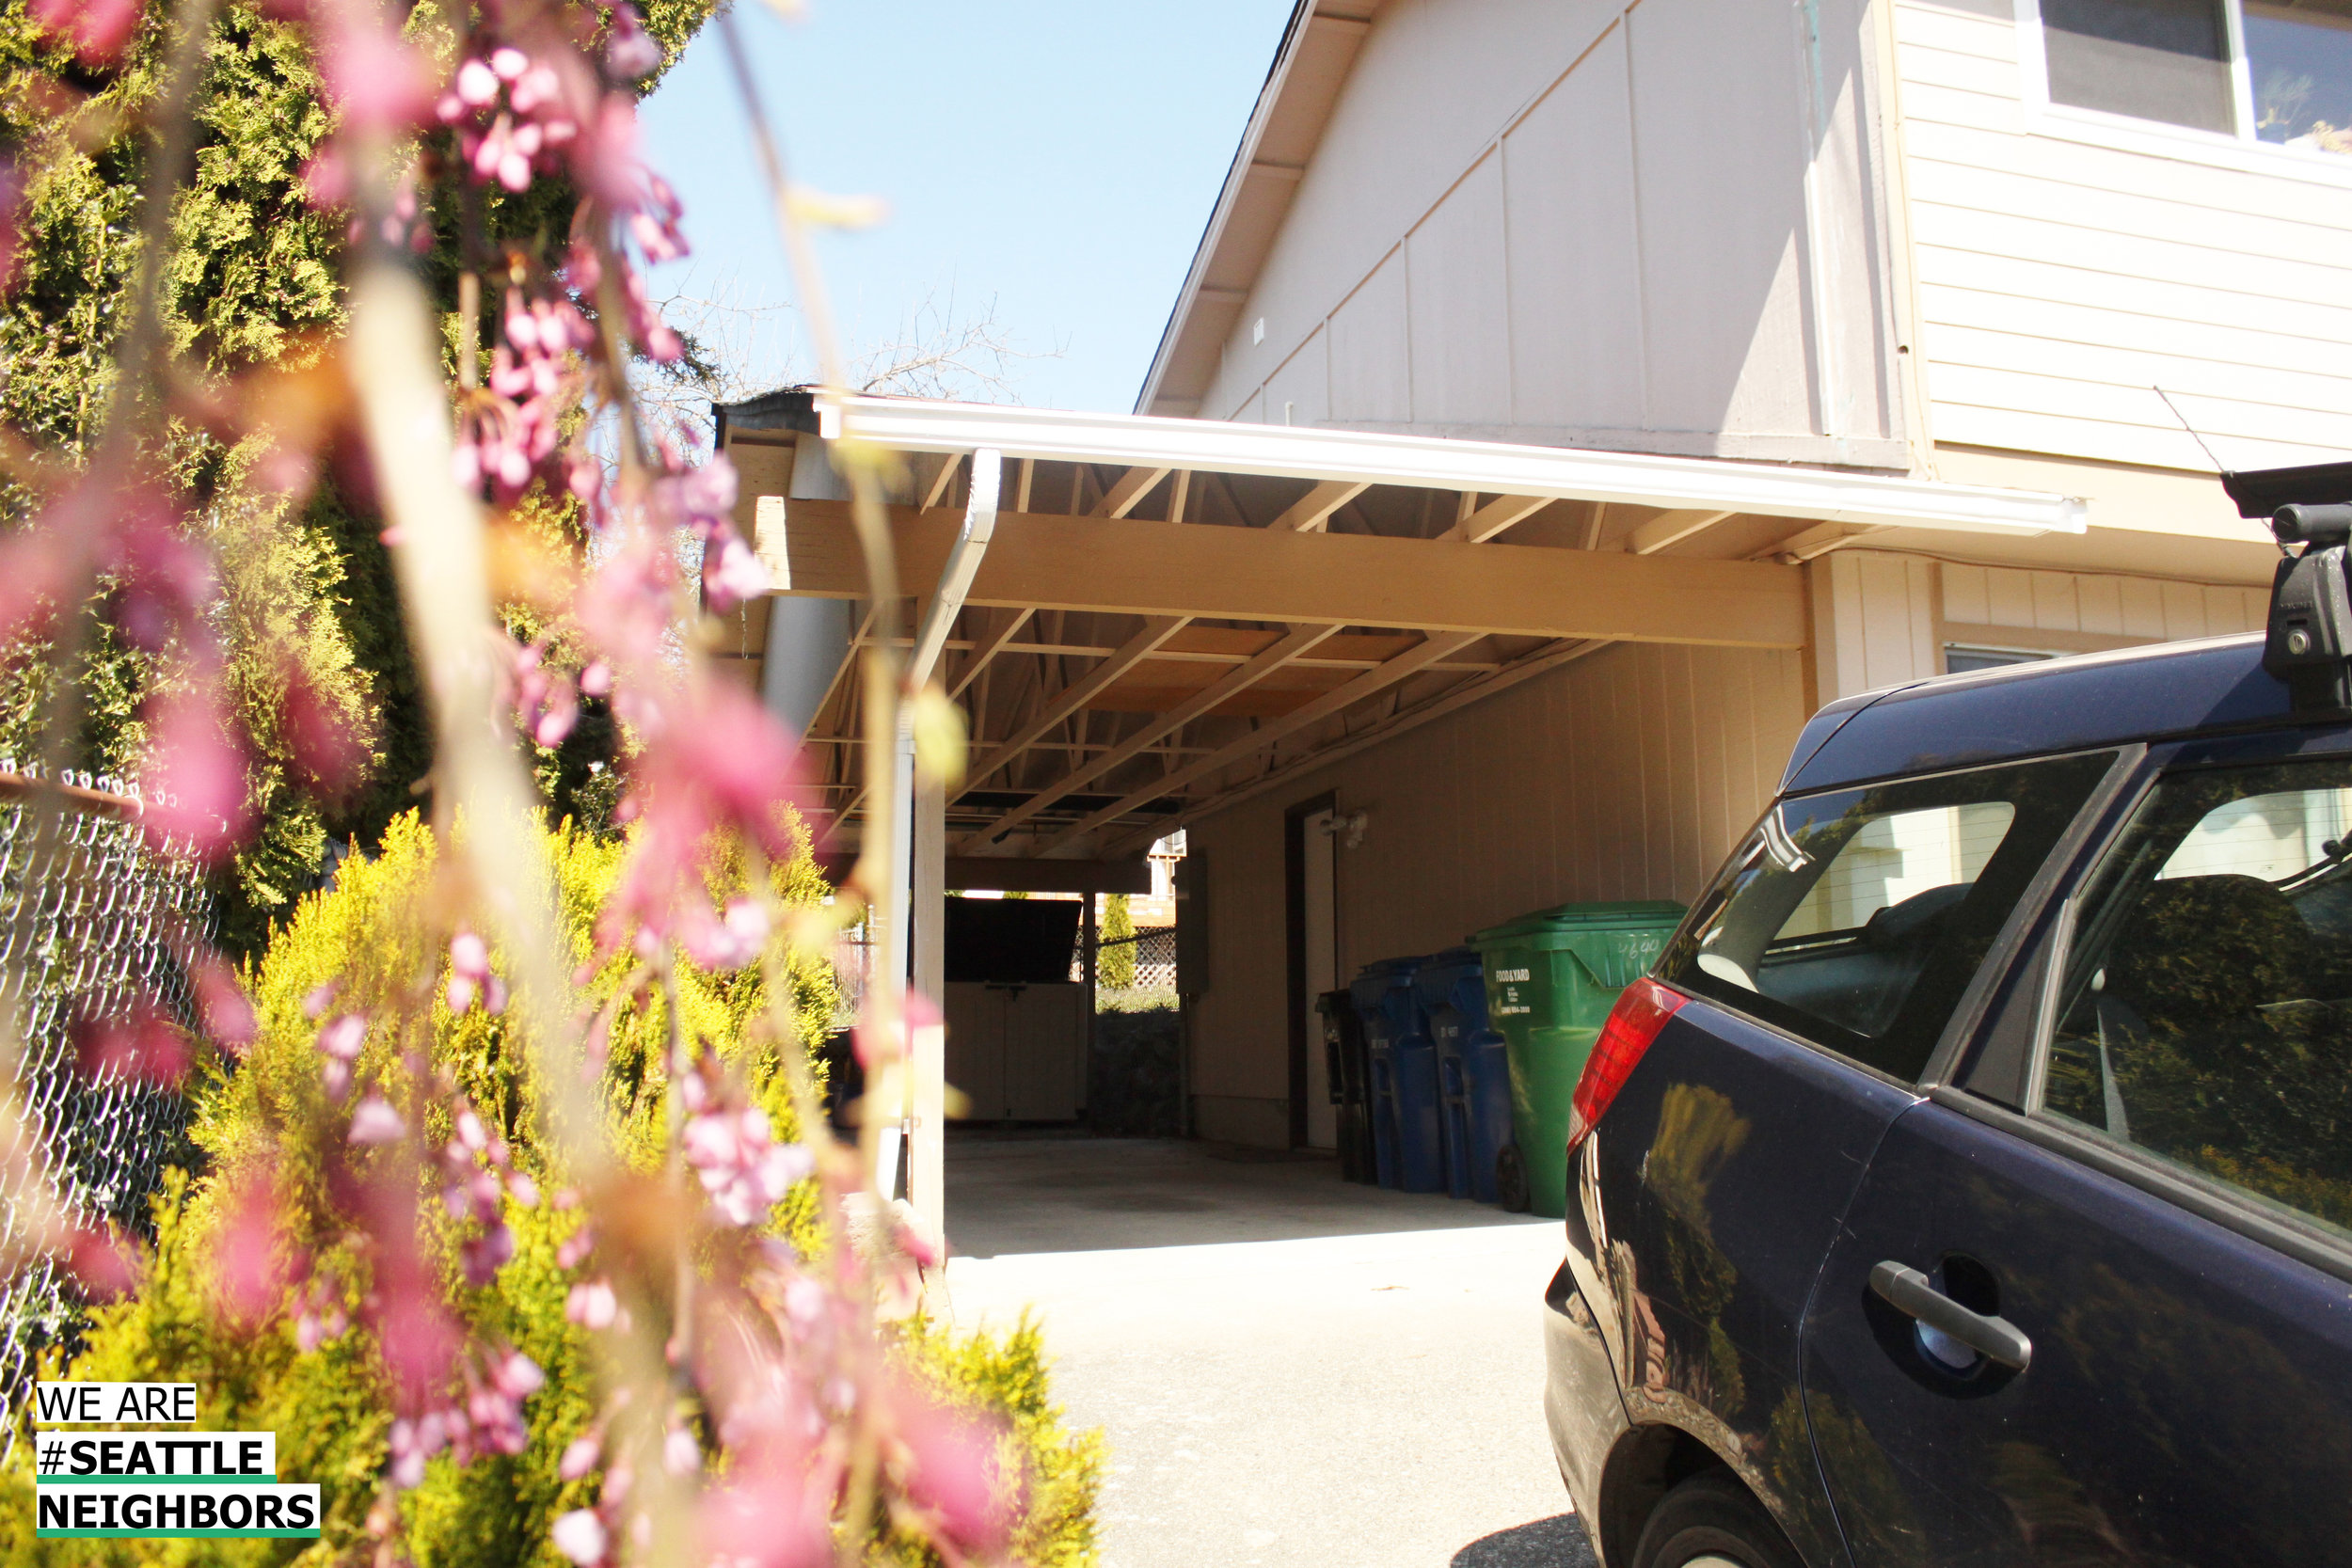 One of the doors to the ADU, located under the carport.